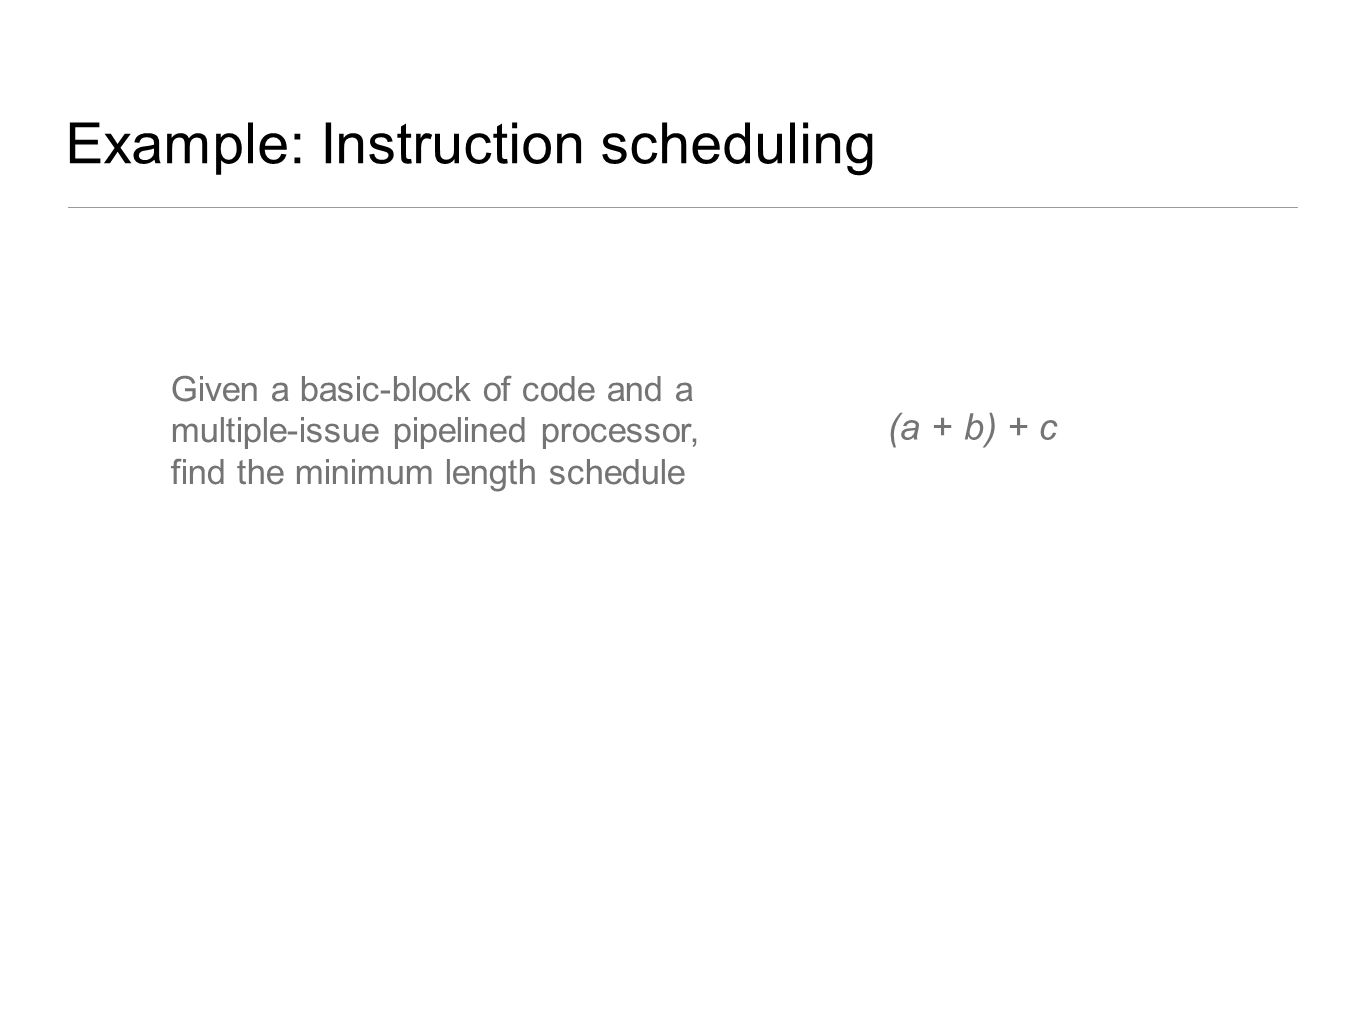 (a + b) + c Example: Instruction scheduling Given a basic-block of code and a multiple-issue pipelined processor, find the minimum length schedule